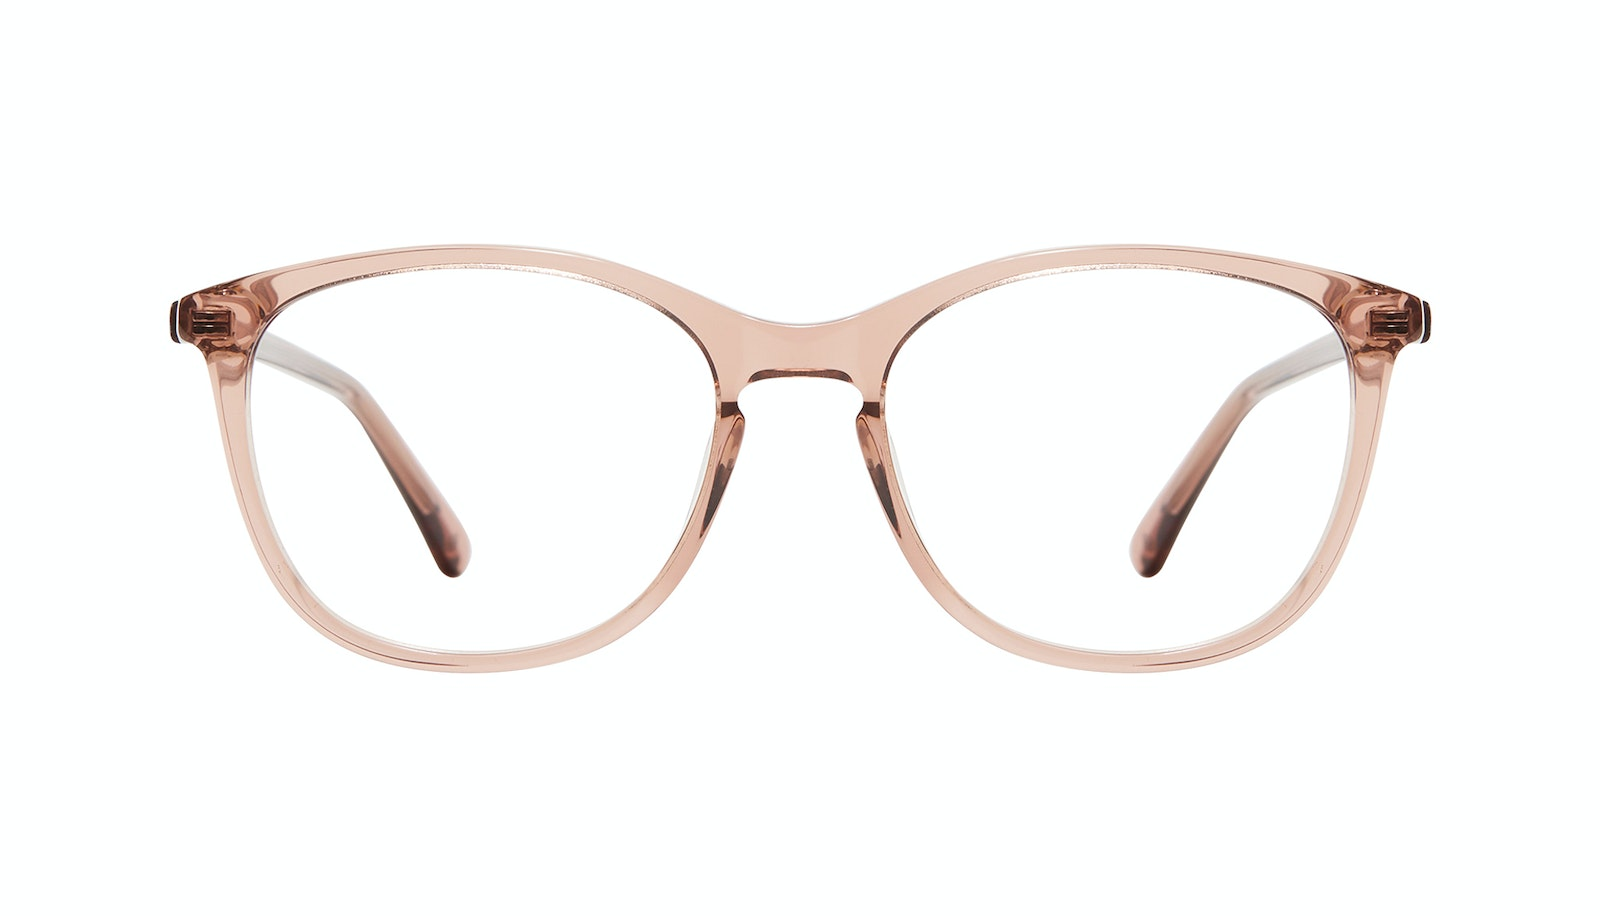 Affordable Fashion Glasses Rectangle Square Round Eyeglasses Women Nadine XL Rose